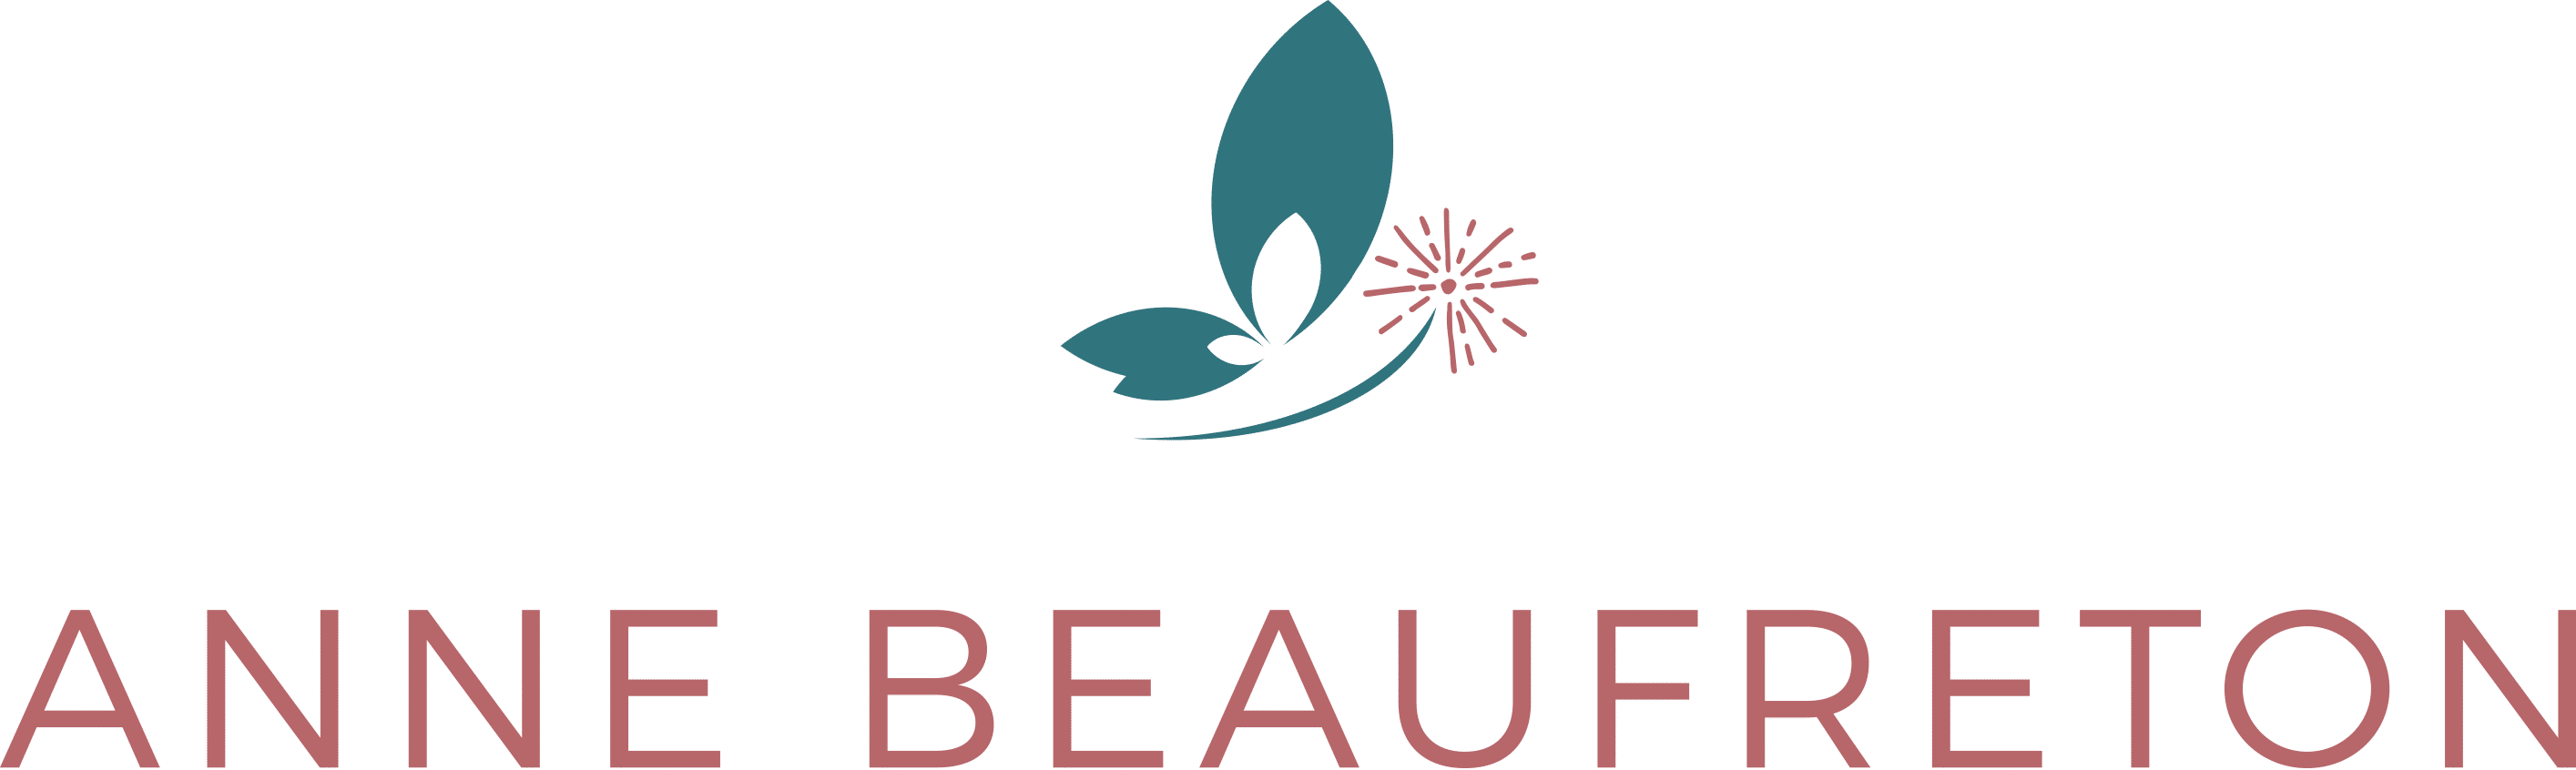 Logotype du site d'Anne Beaufreton